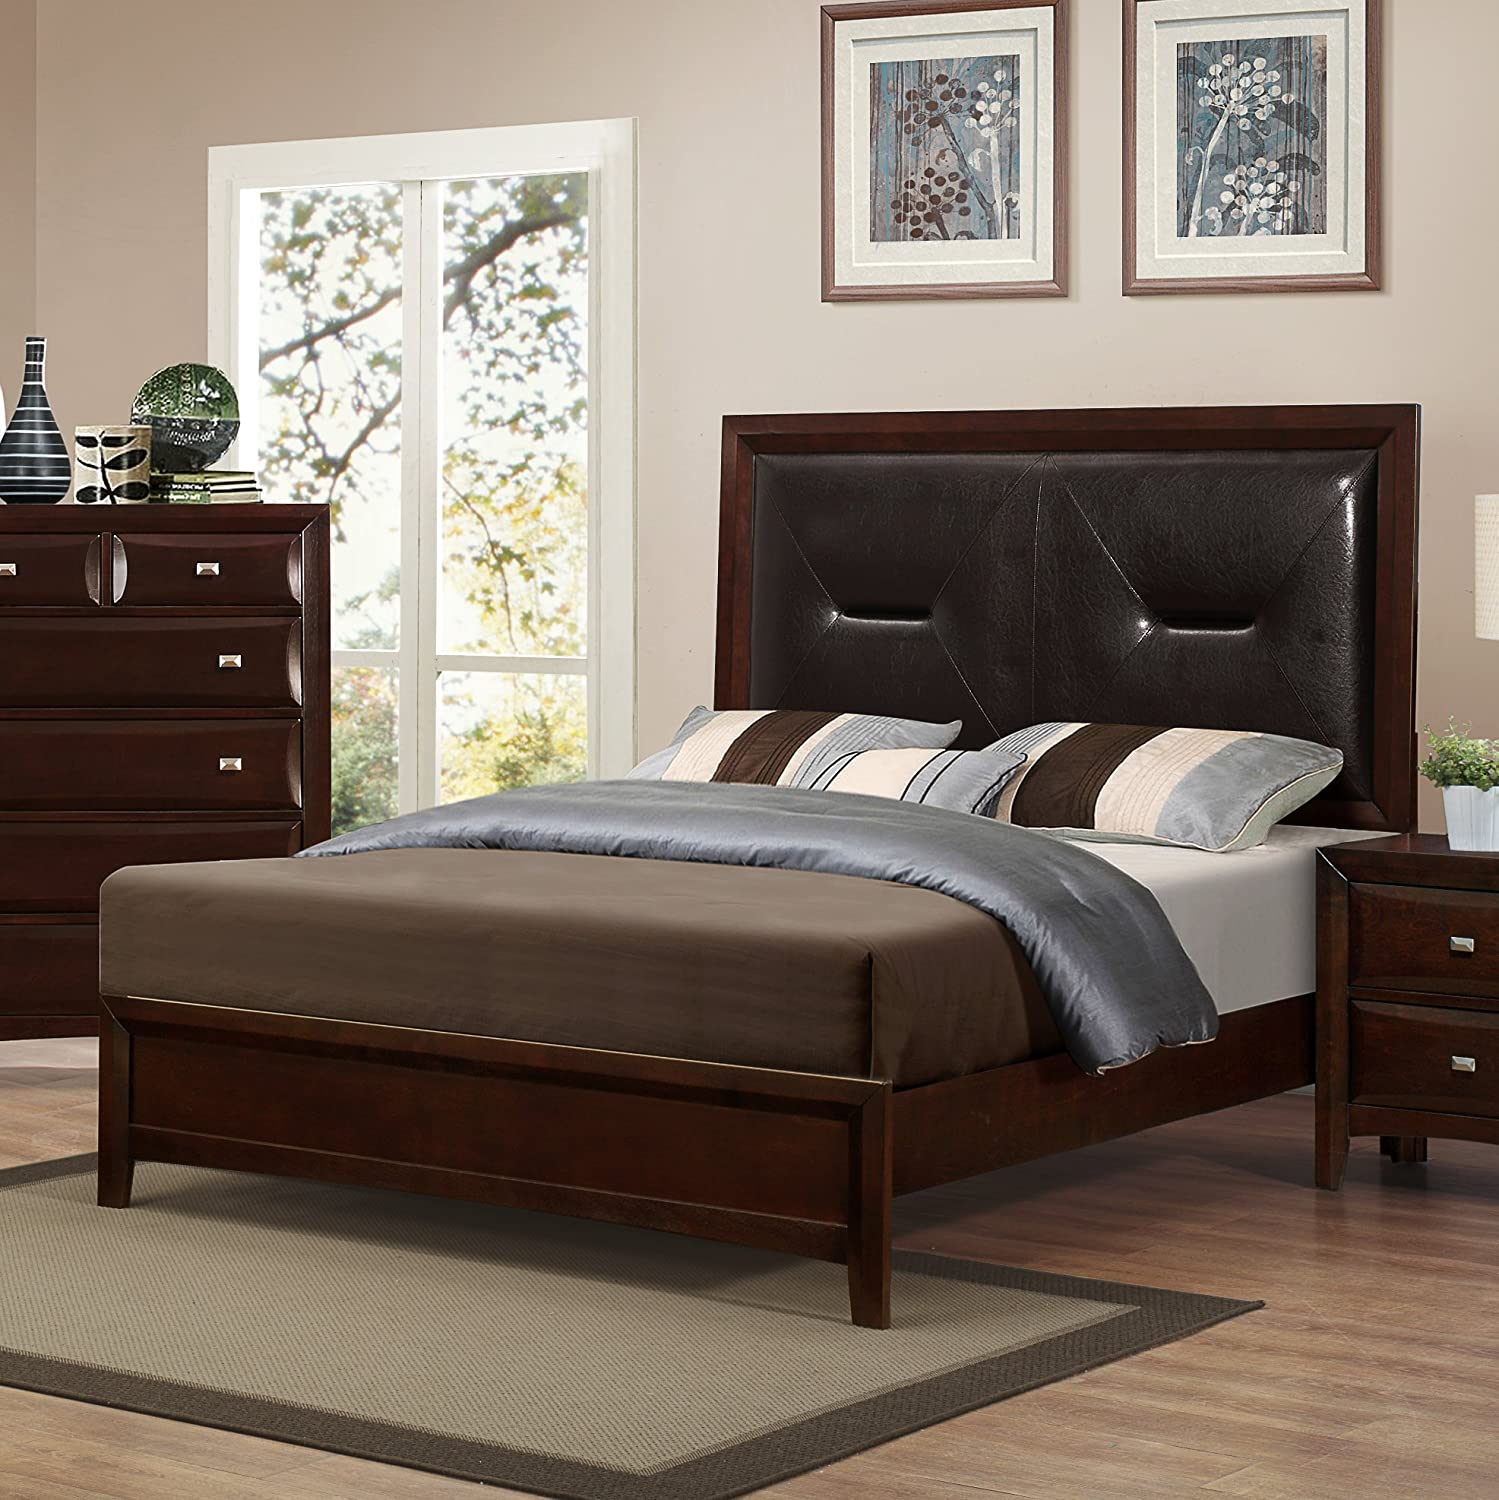 Roundhill Furniture Mateo 077 Cappuccino Finish Wood Queen Size bed - Queen